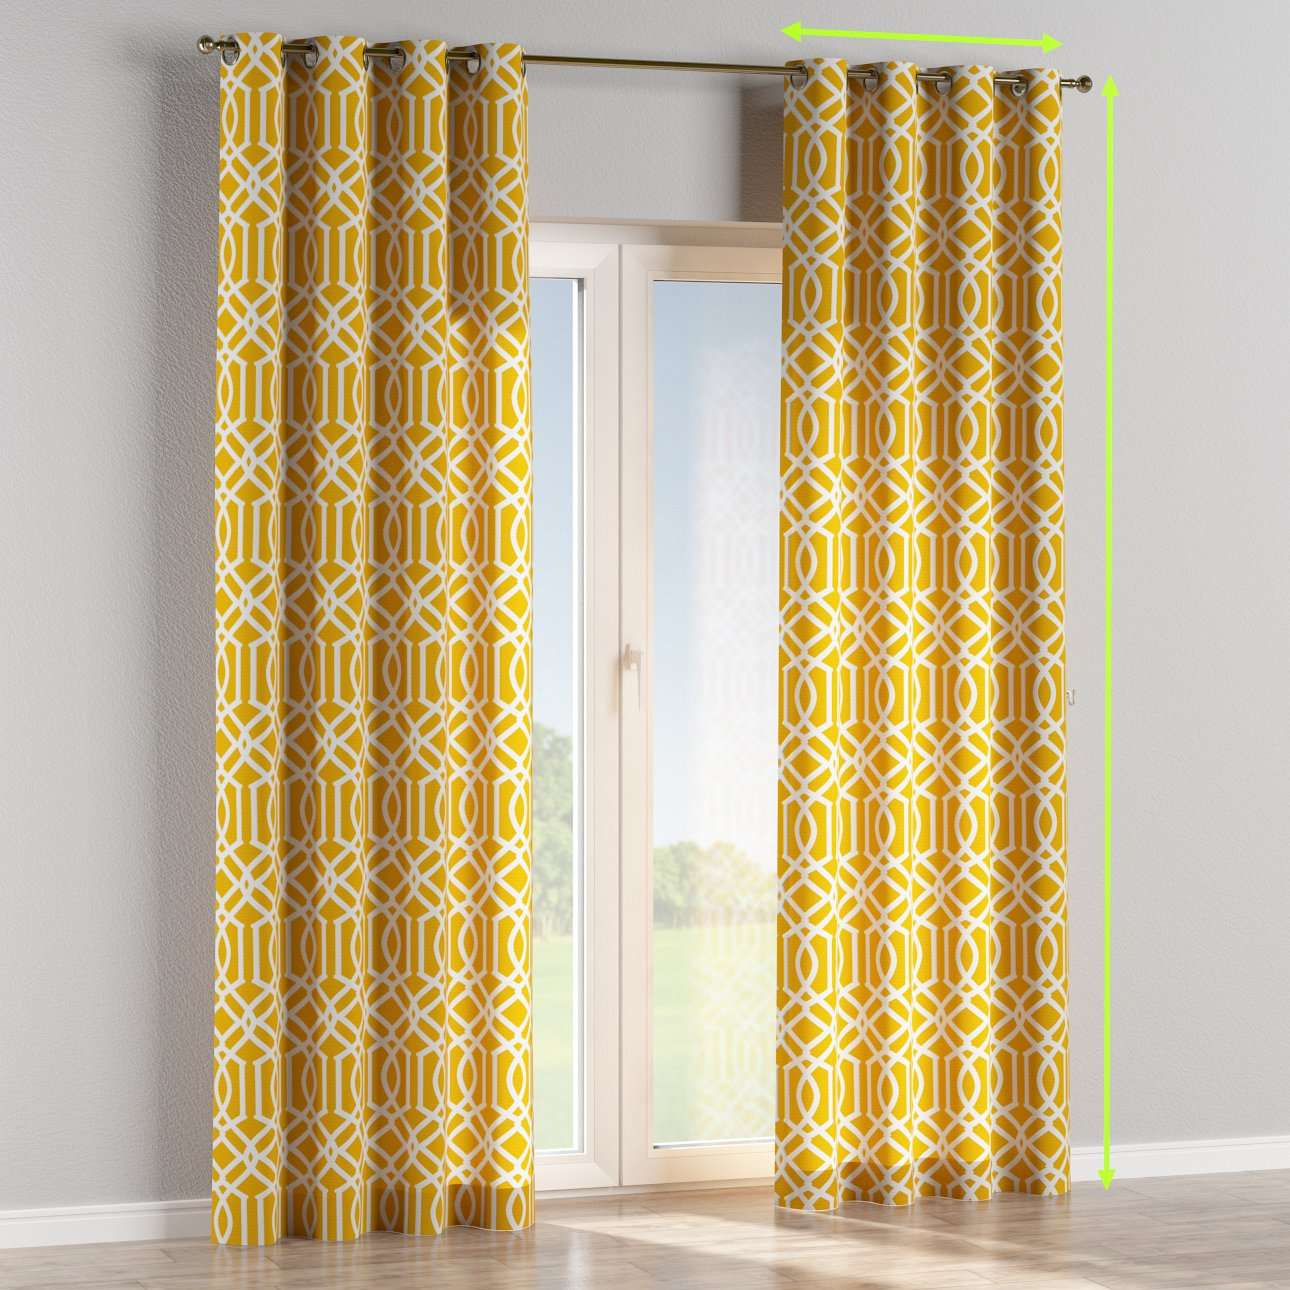 Eyelet curtains in collection Comics/Geometrical, fabric: 135-09